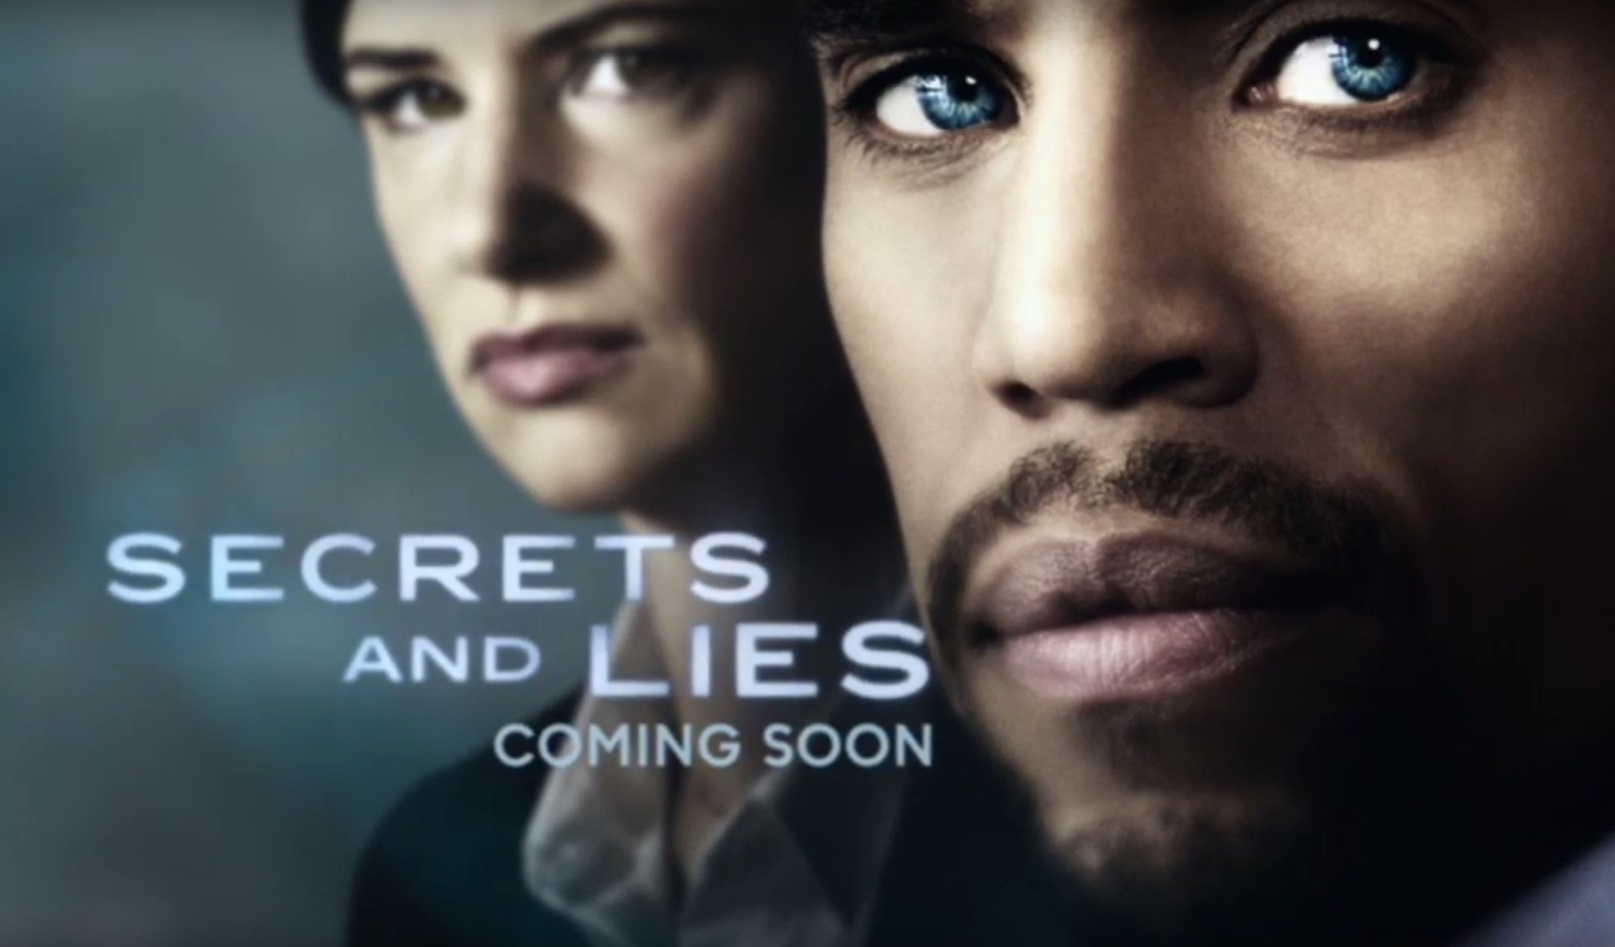 When Does Secrets and Lies Season 2 Start? (October 2016)